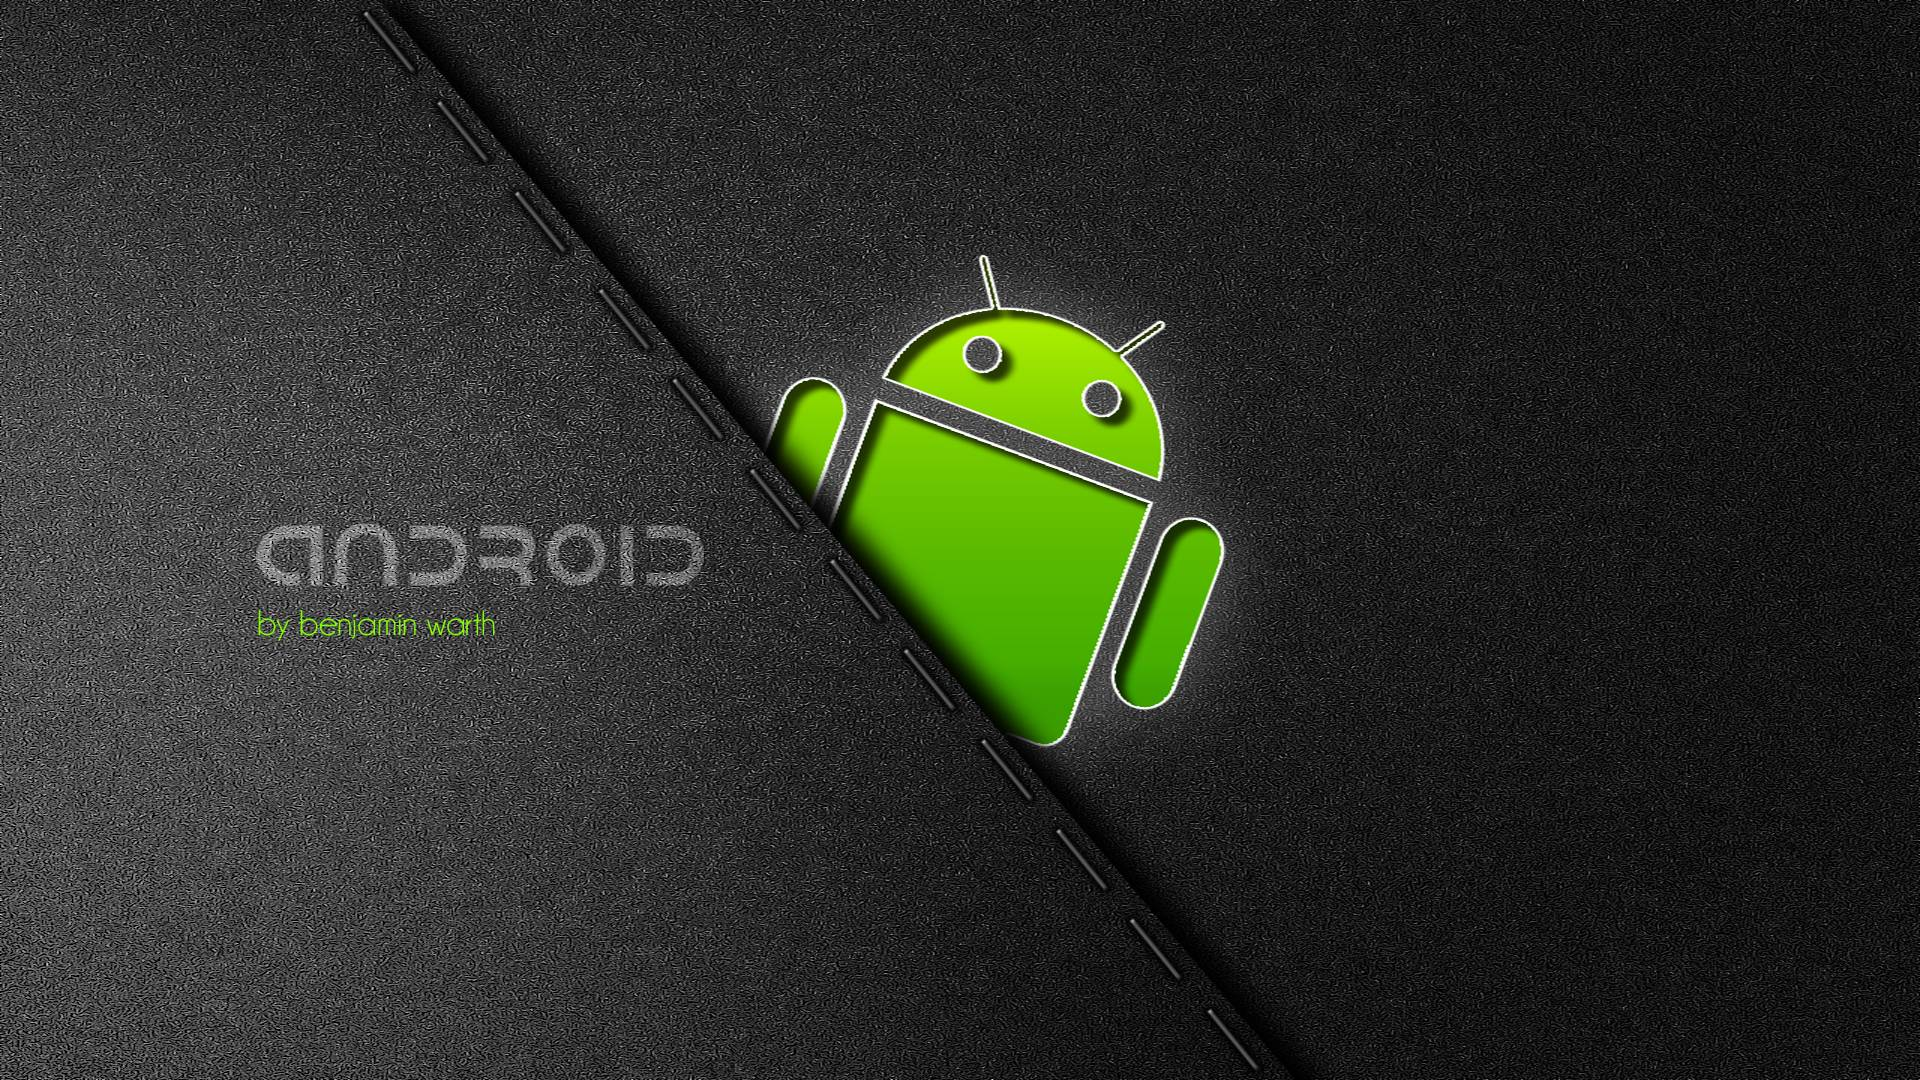 new best android logo wallpaper background 5586 wallpaper high